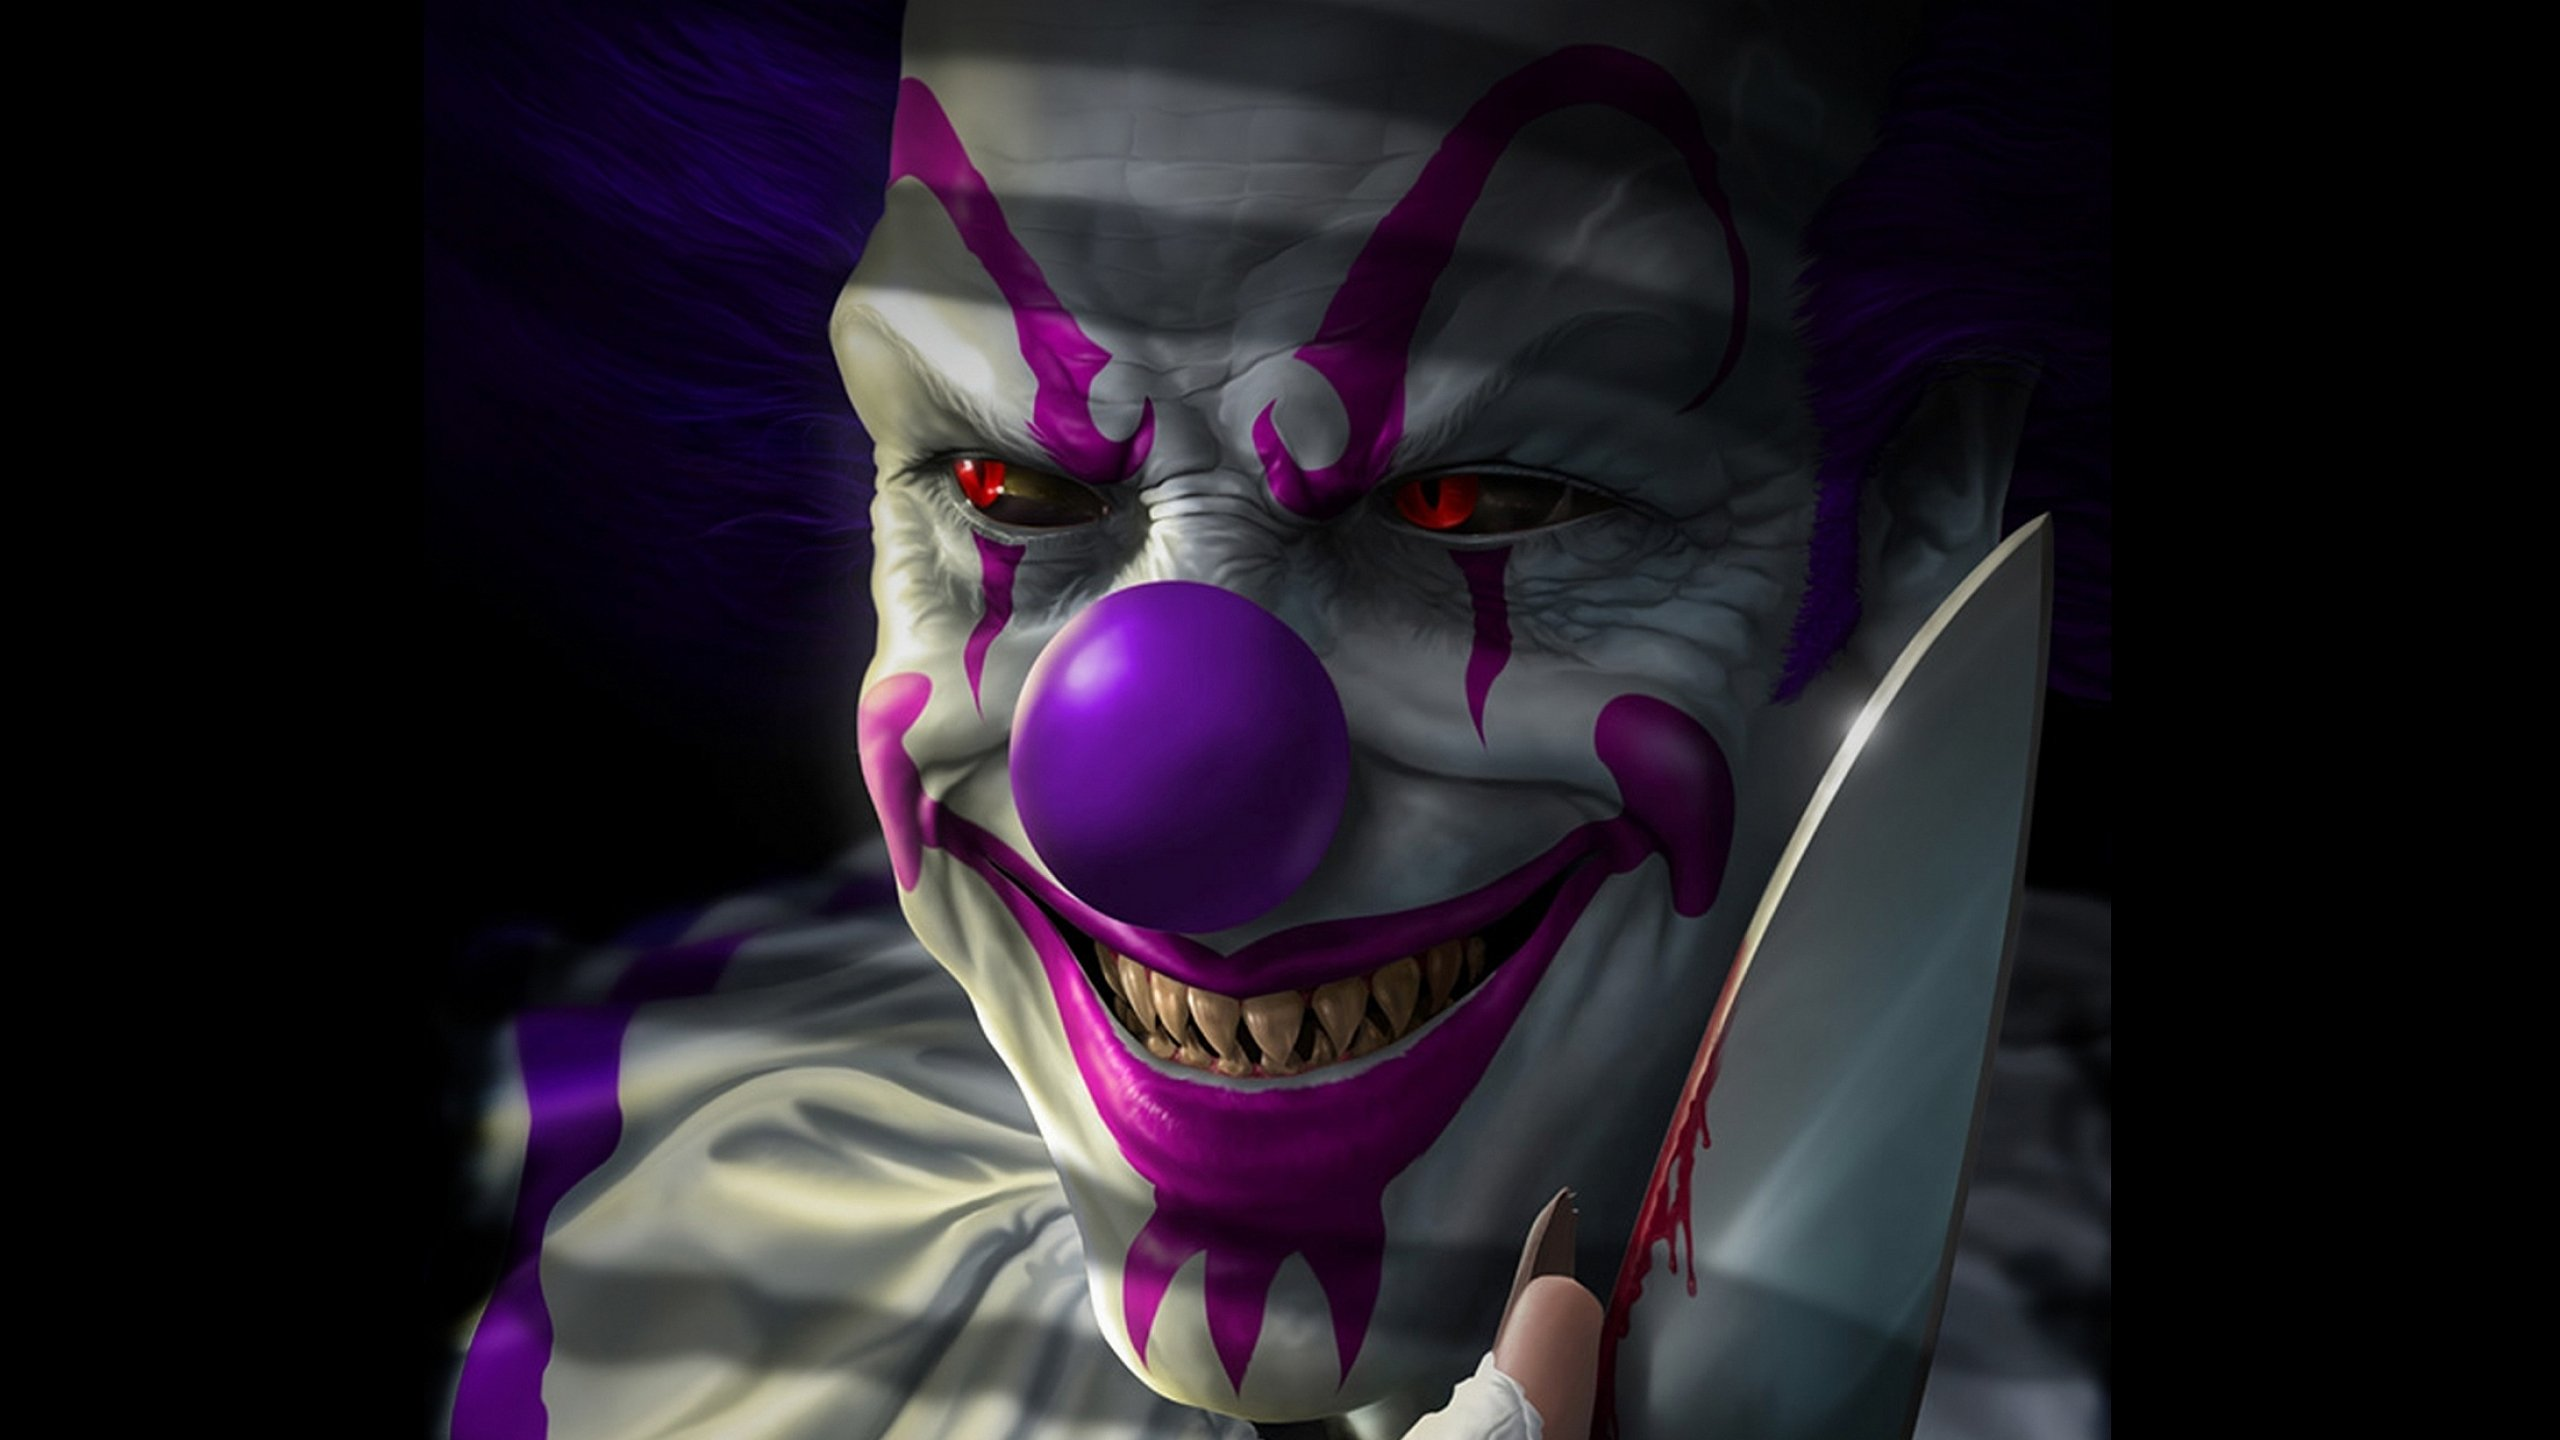 Scary Clown Wallpaper Free – Epic Wallpaperz